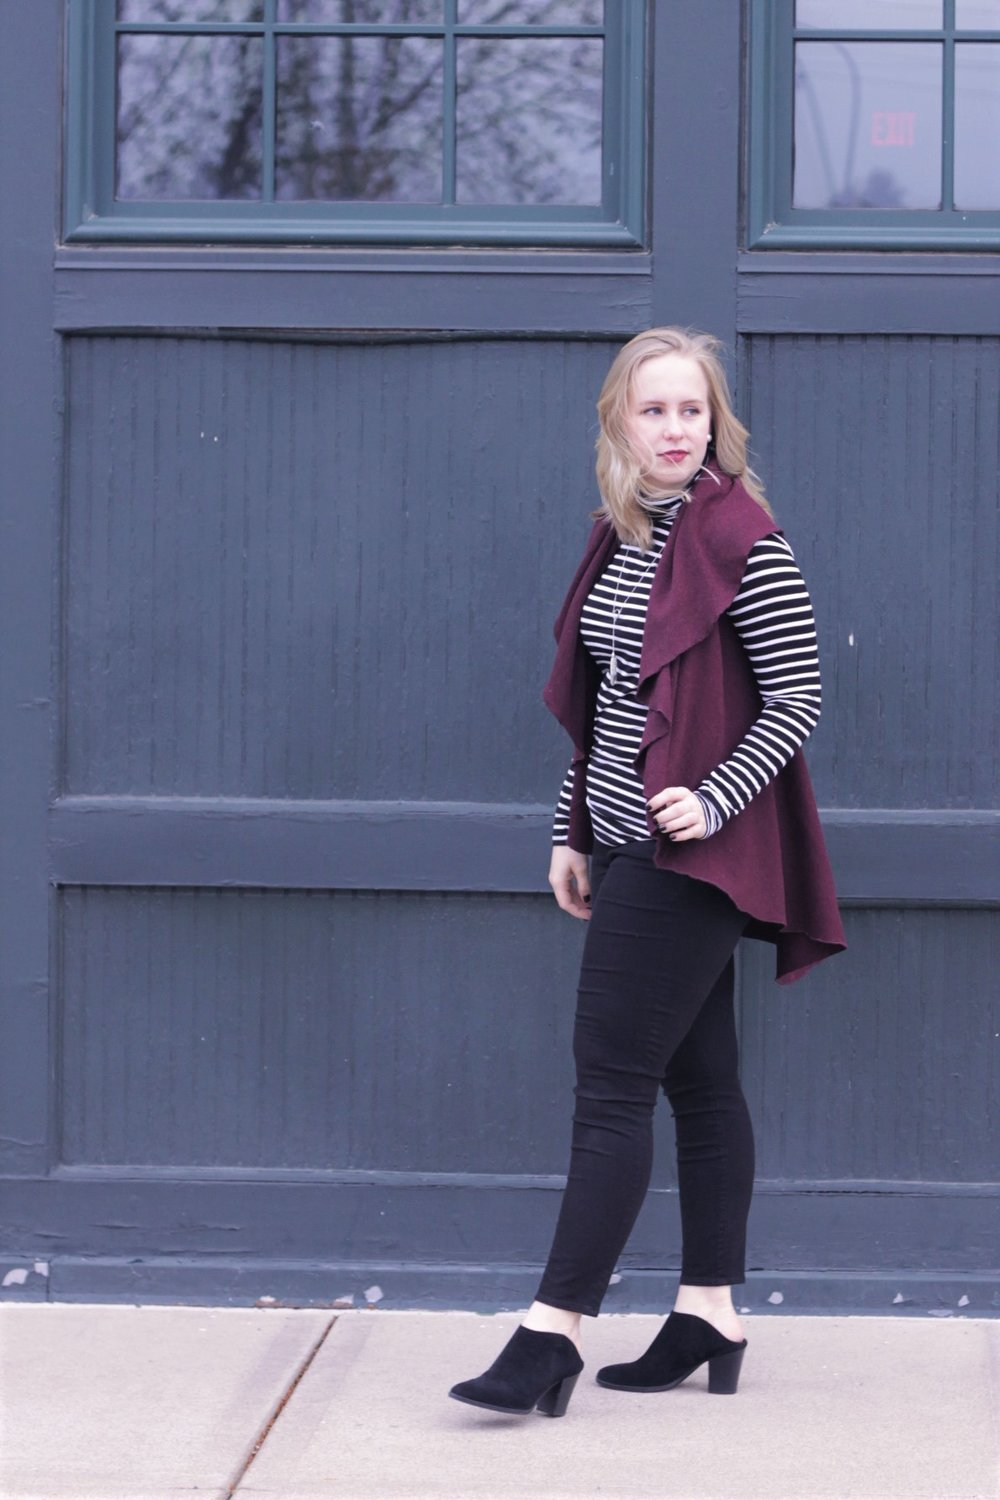 Hope Chest Fashion | Capelette Review | Work & What She Wore